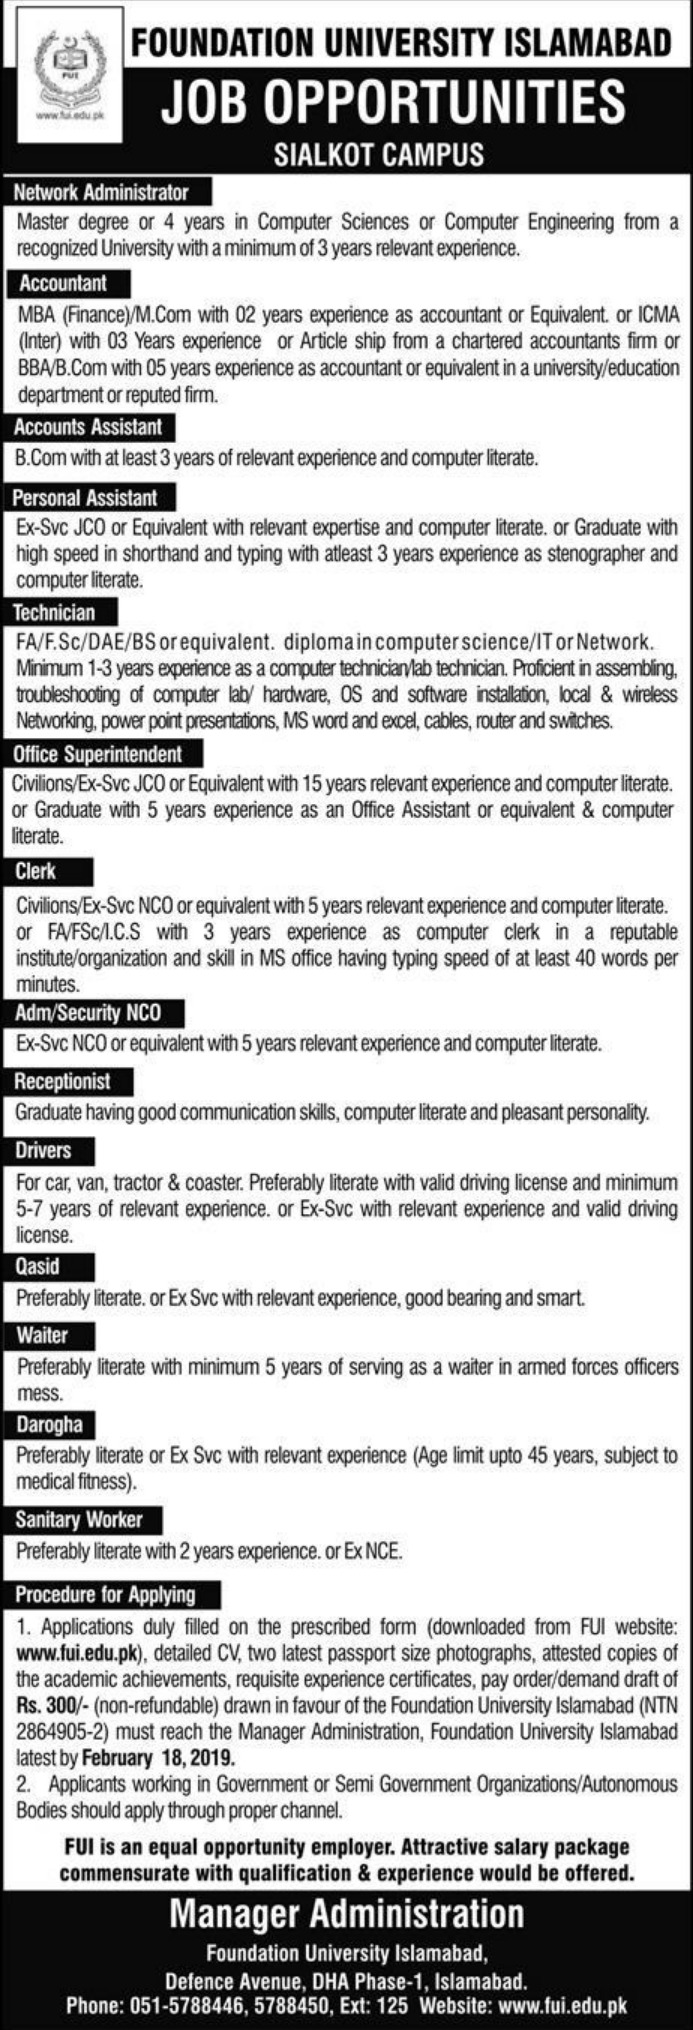 Foundation University Islamabad Jobs 2019 Sialkot